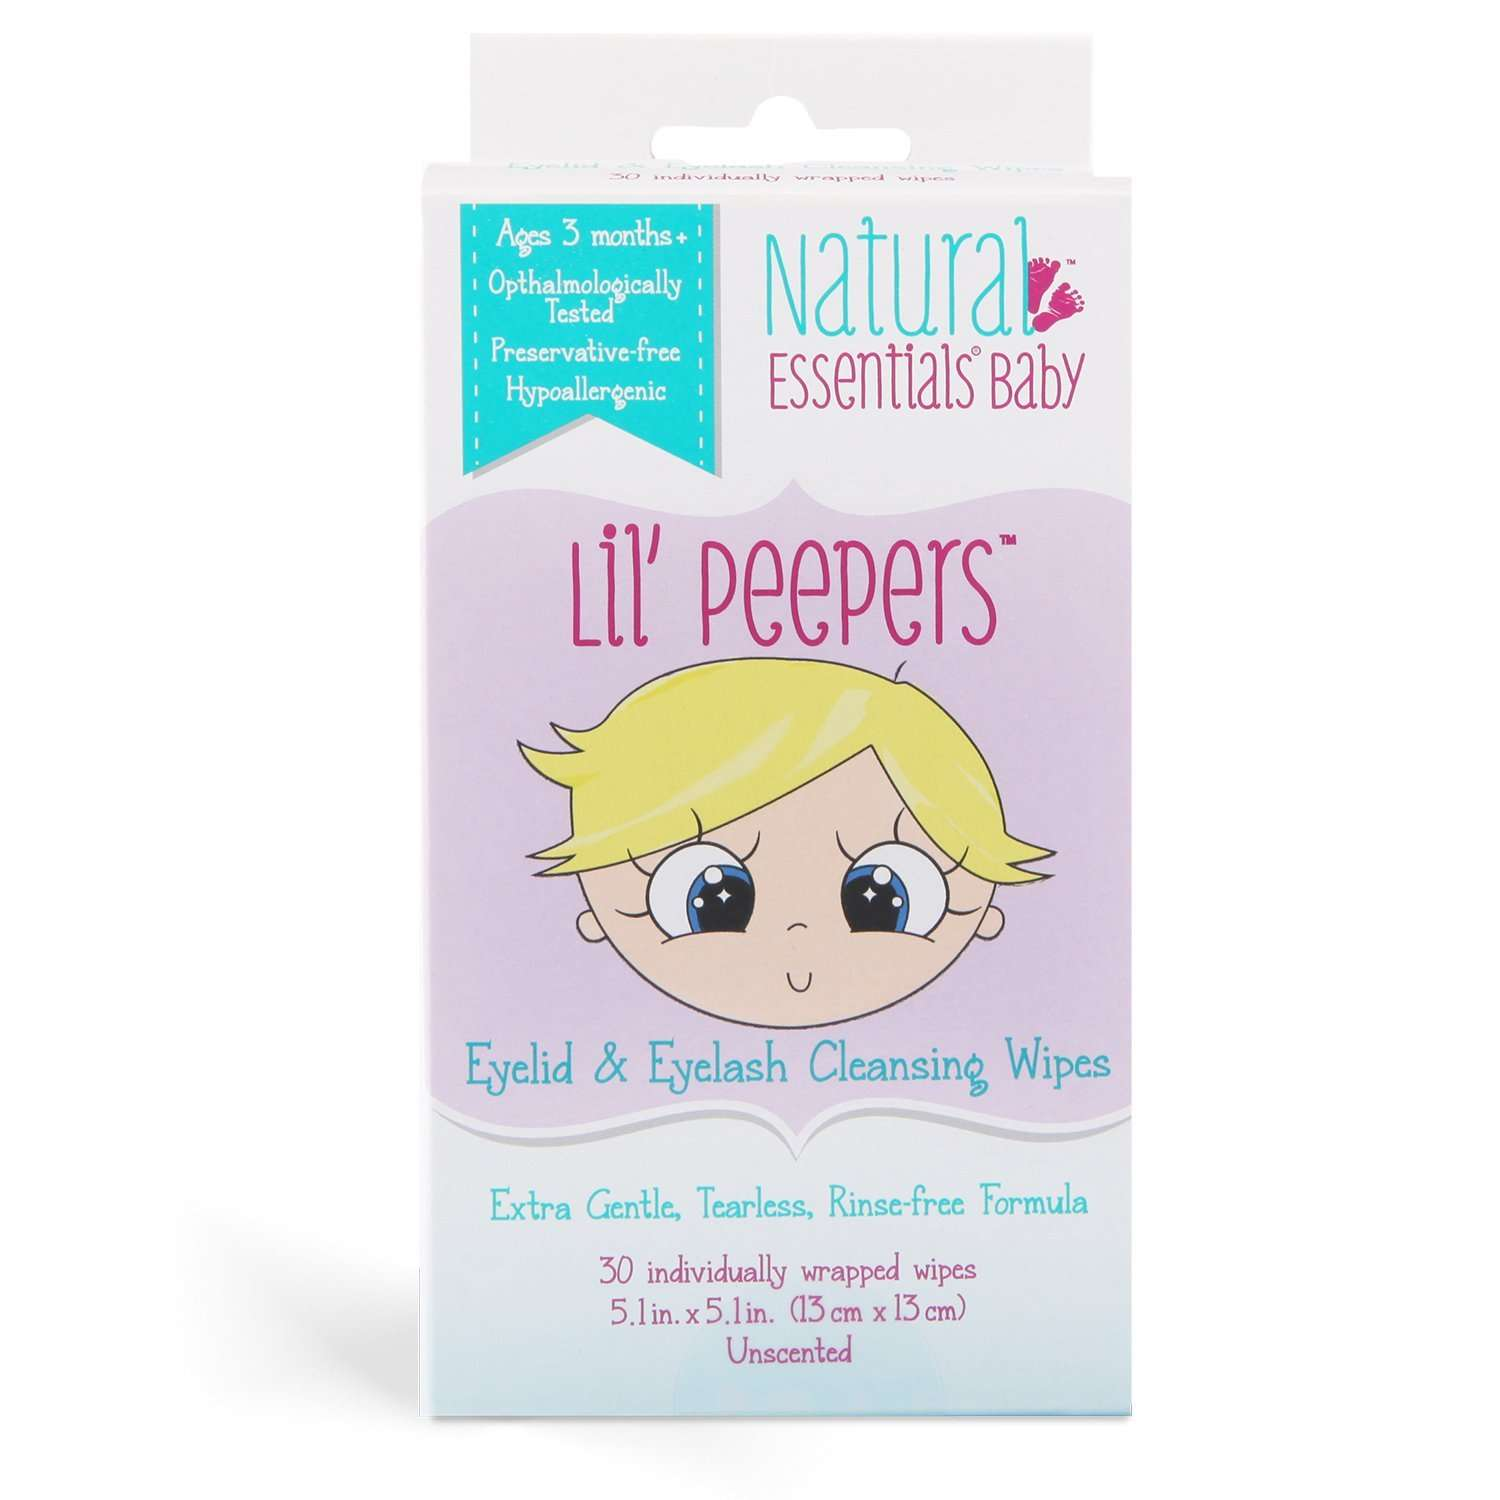 Baby Eye Wipes good for adults and children of all ages.